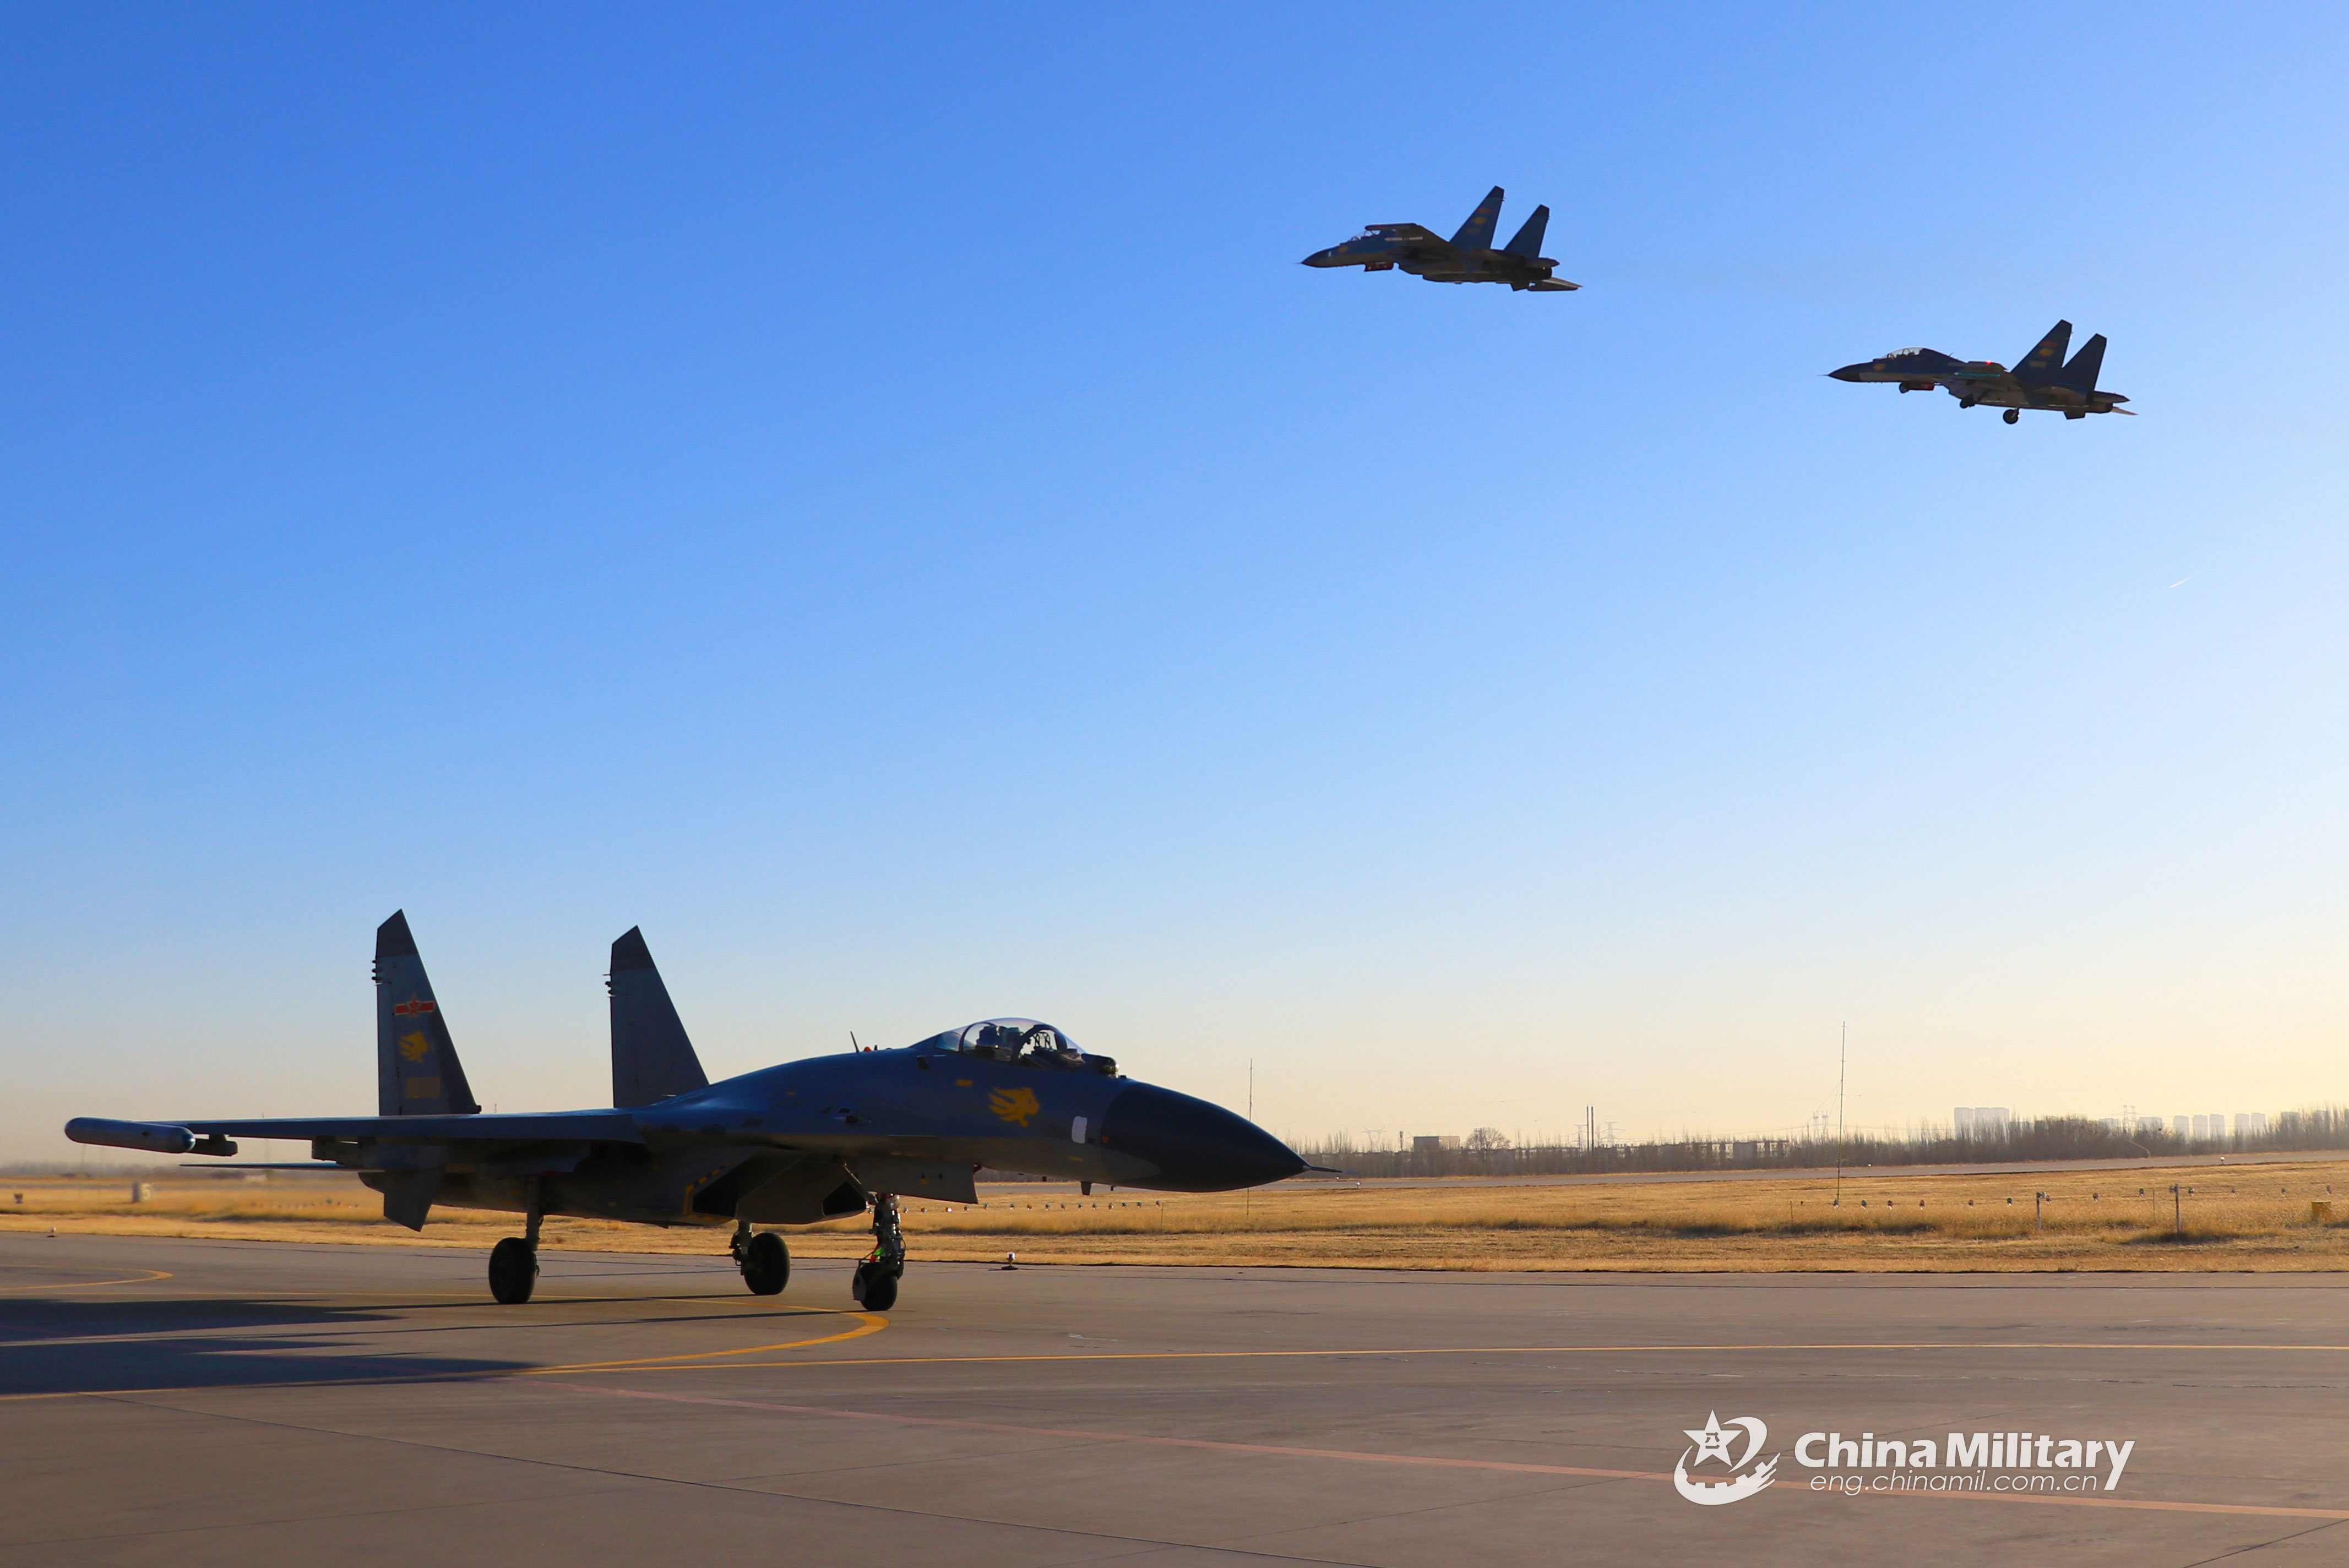 Preflight systems check before launching - China Military